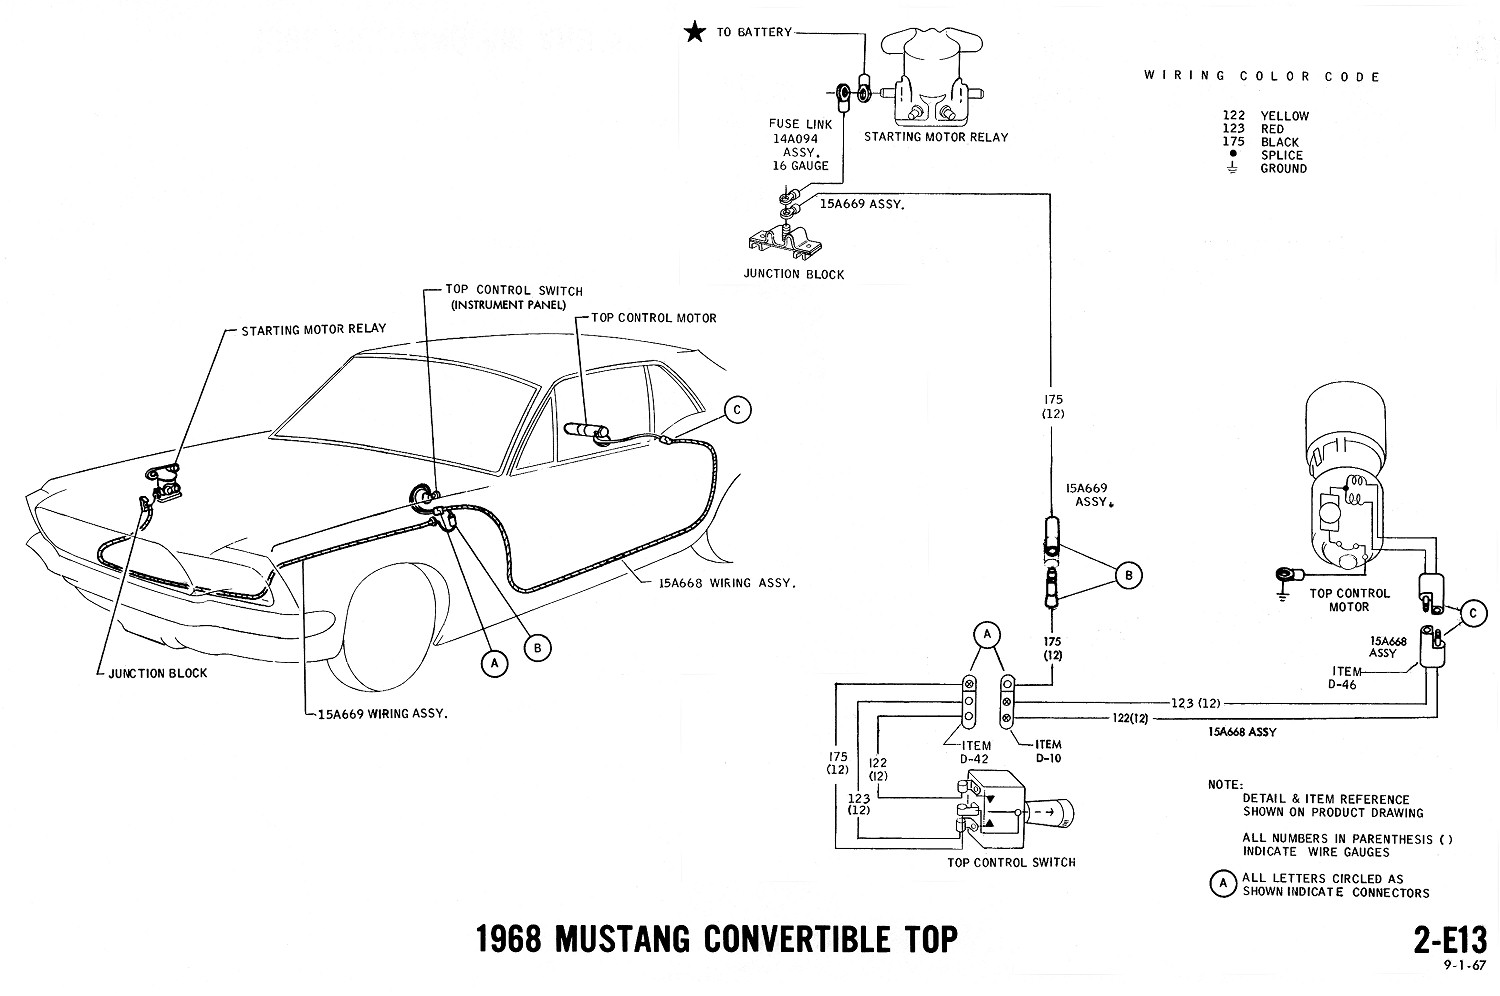 wiring diagram best ford mustang free stereo amplifier wiring diagram 1995 ford mustang 1968 mustang wiring diagrams | evolving software